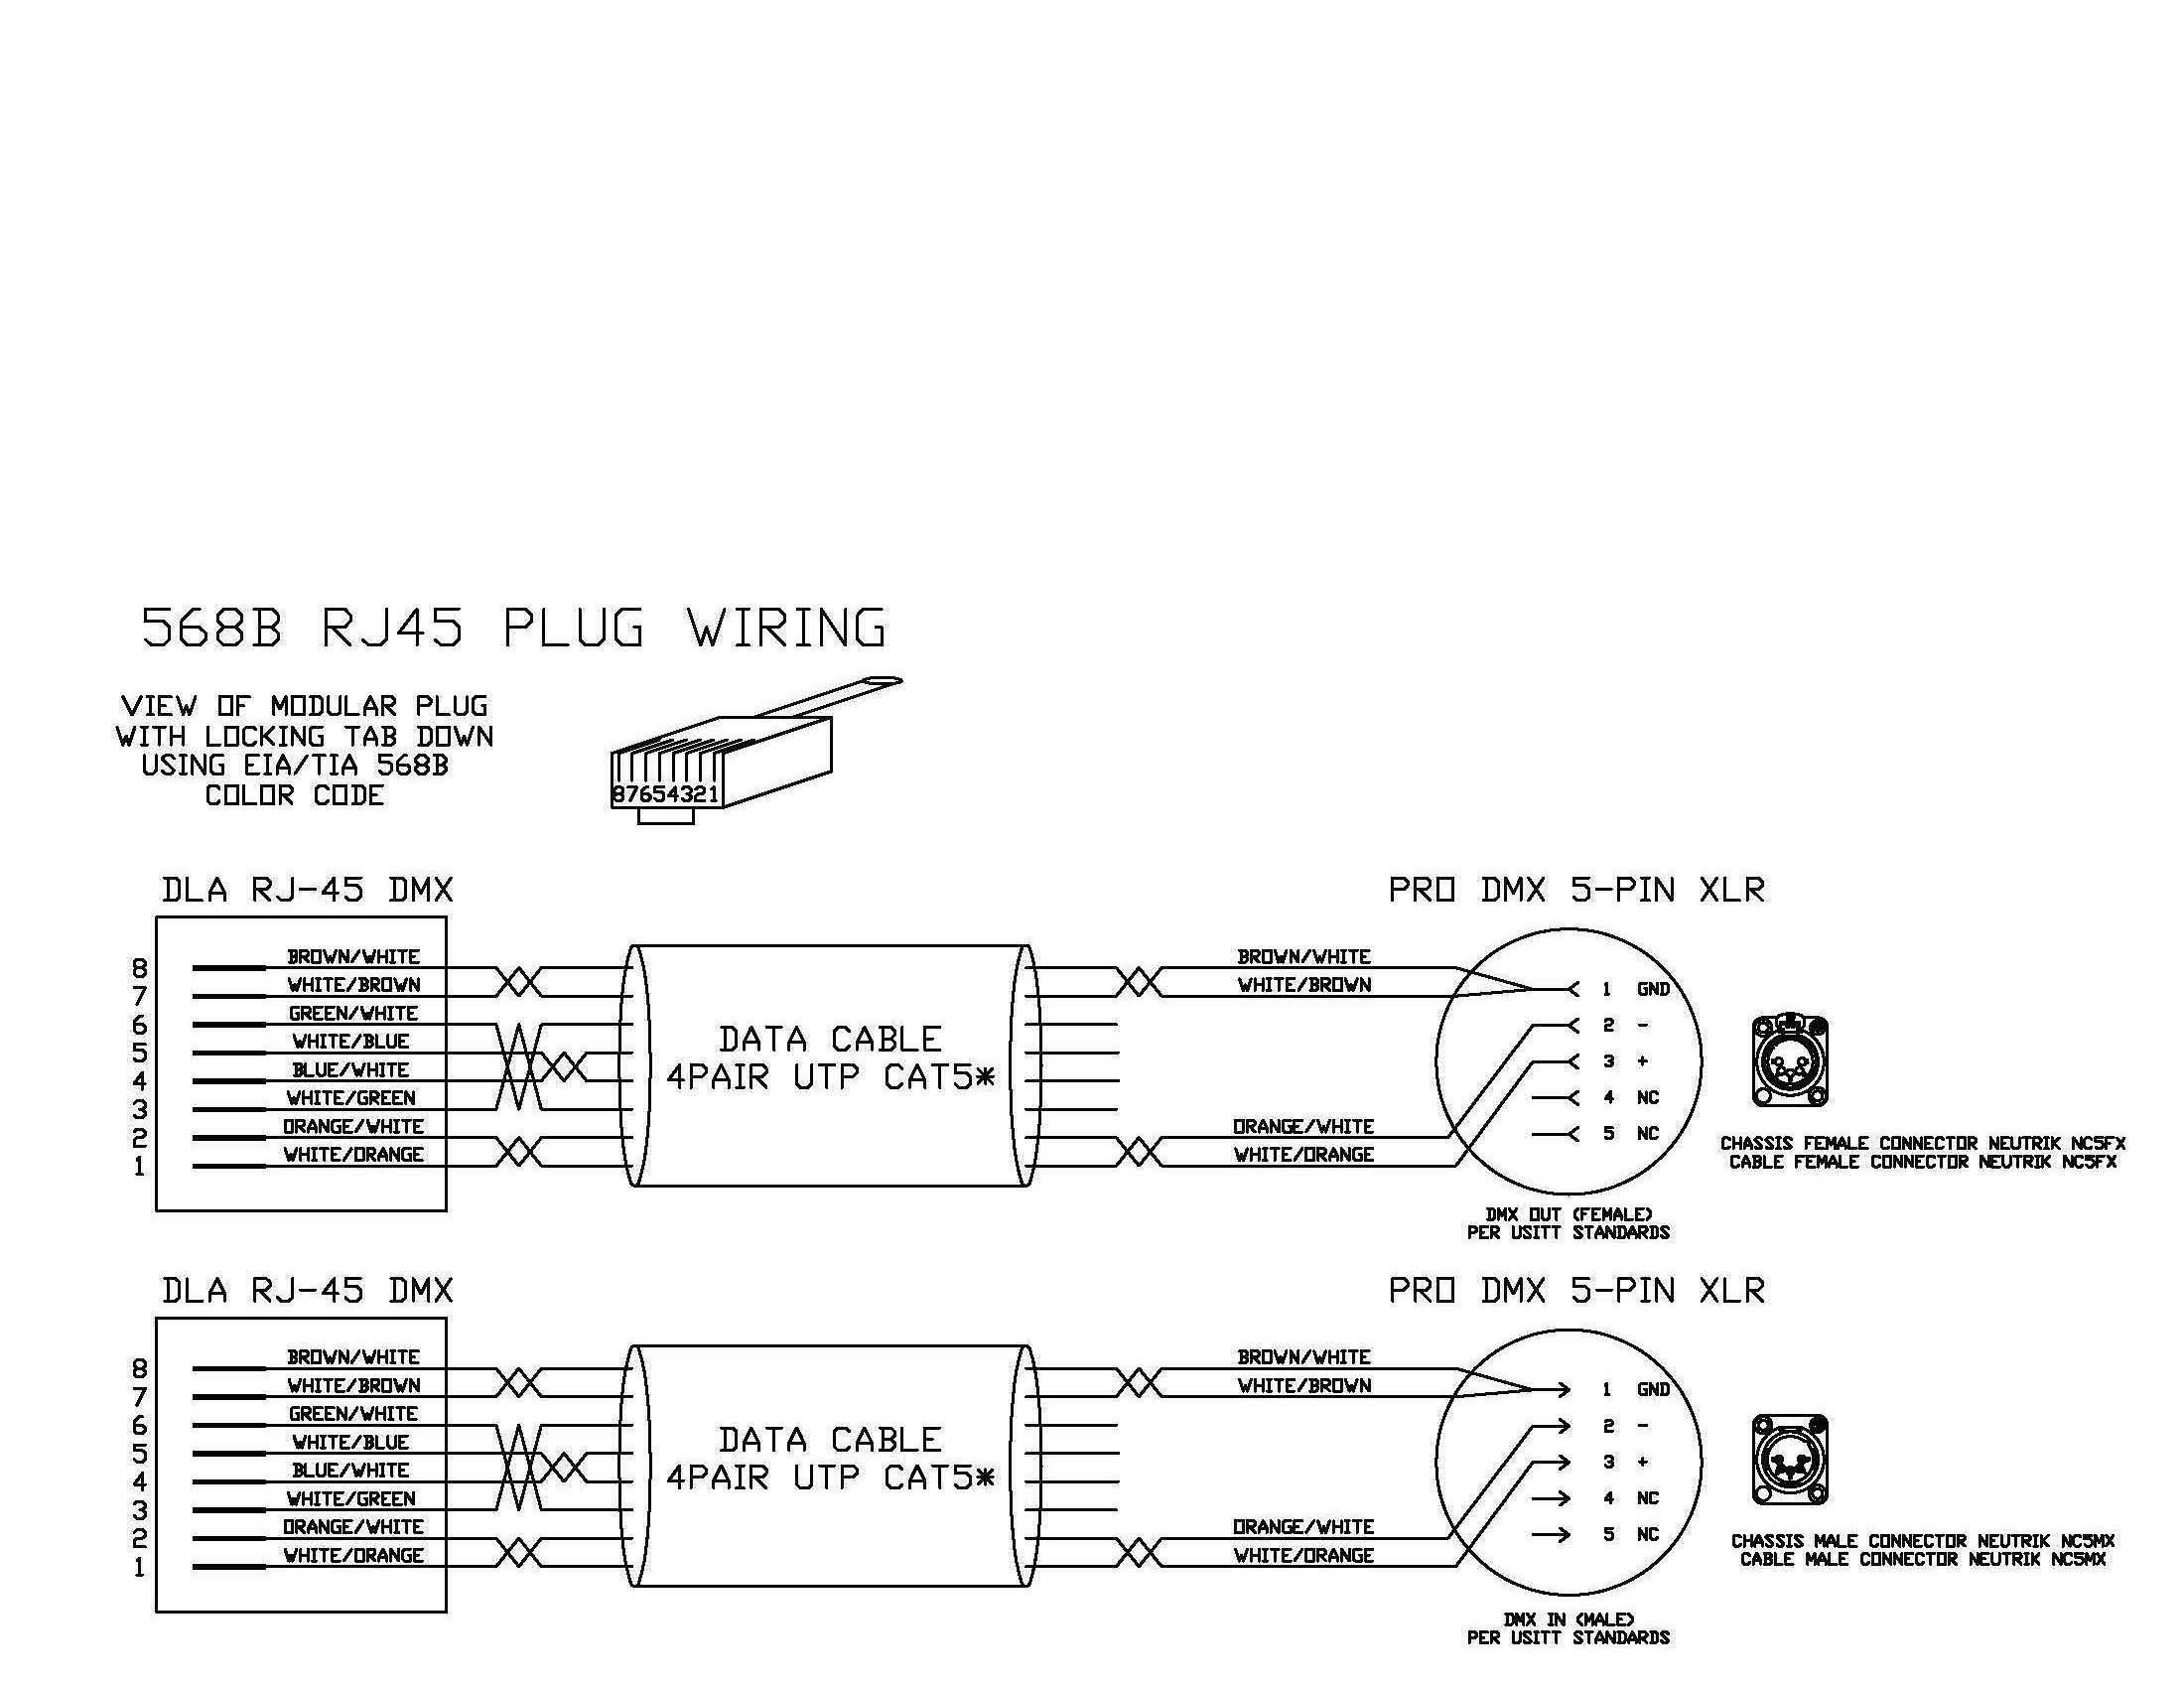 xlr to rj45 wiring diagram xlr electrical wiring diagrams [ 2200 x 1700 Pixel ]